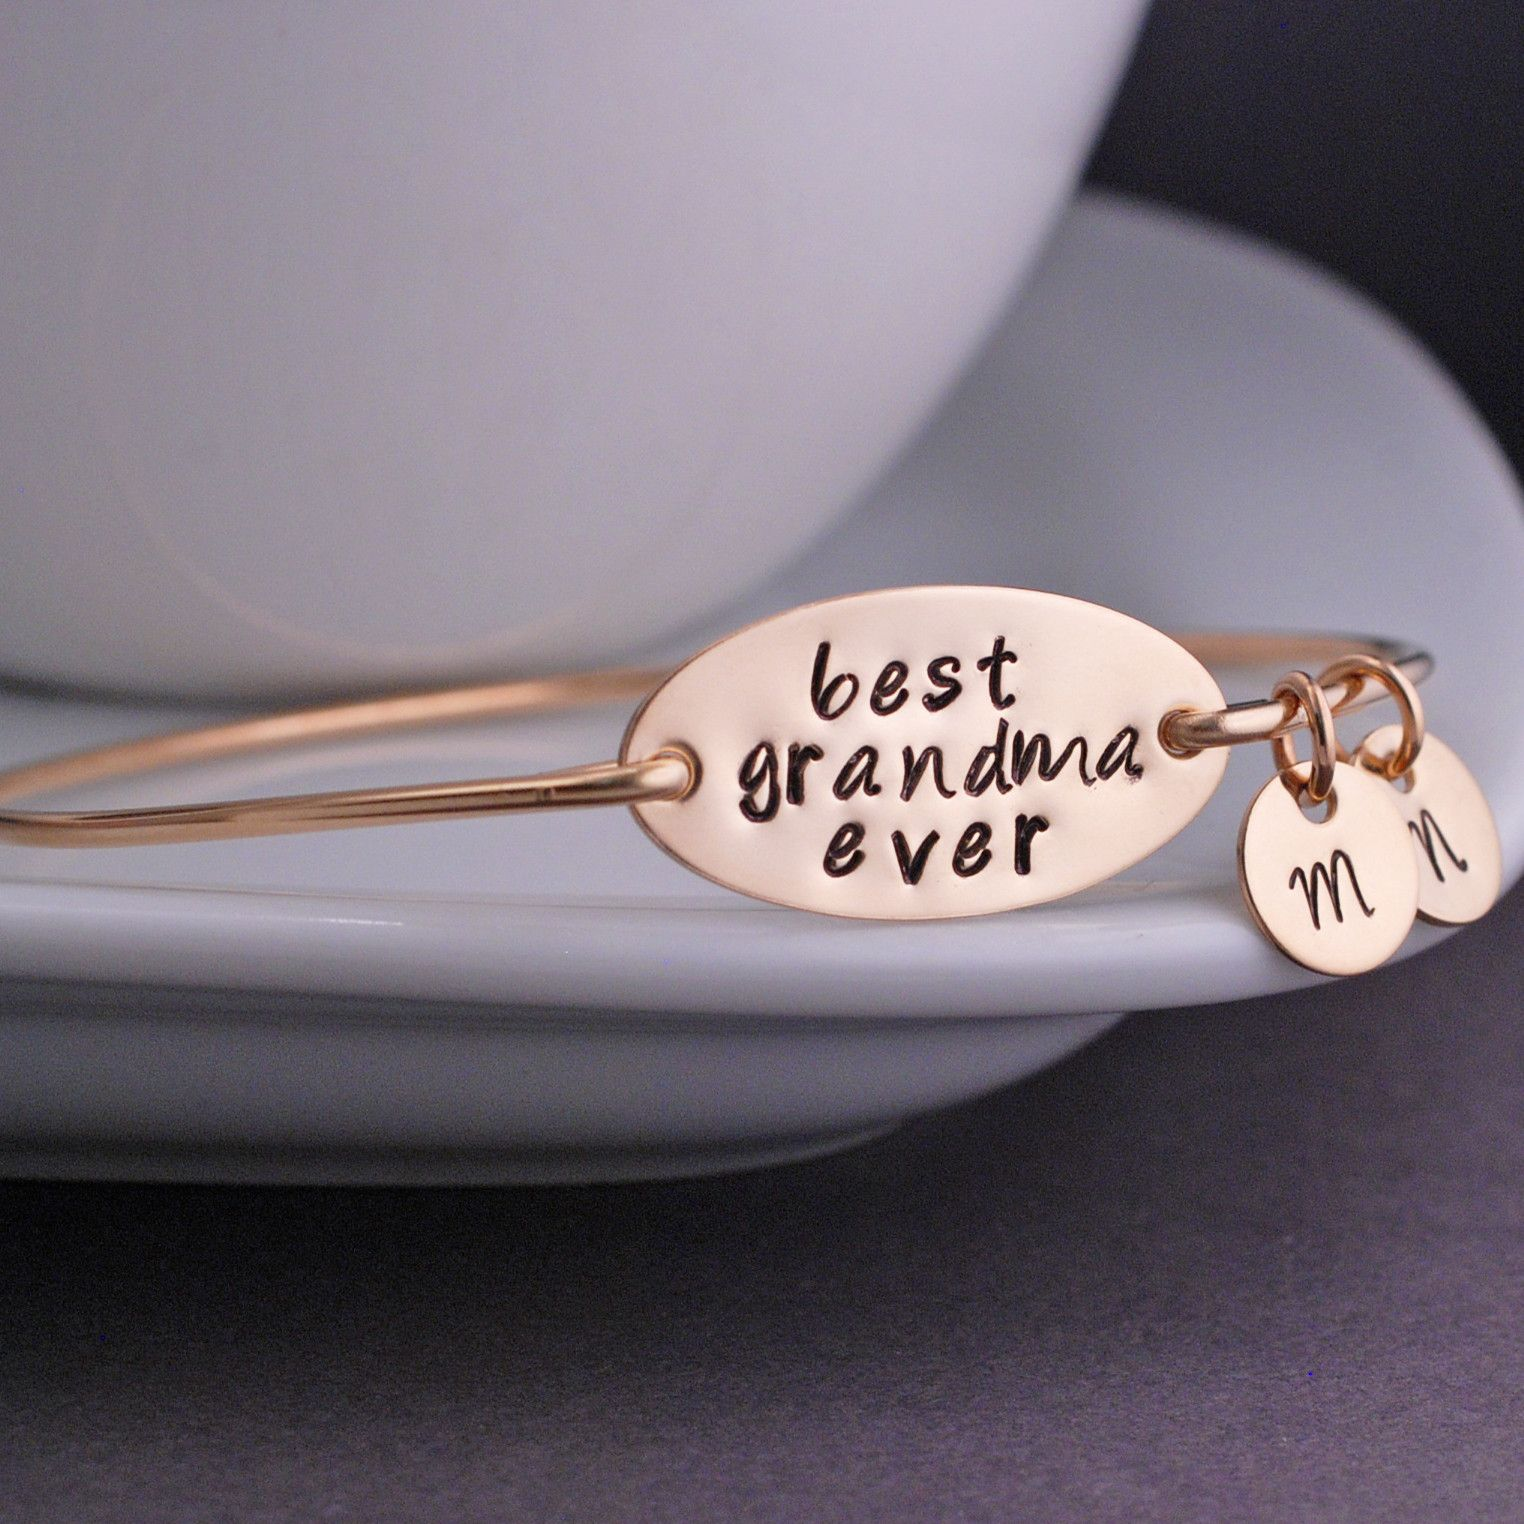 Best Grandma Ever - Gold Bangle Bracelet, Personalized Christmas Gift for Grandma from georgie designs personalized jewelry